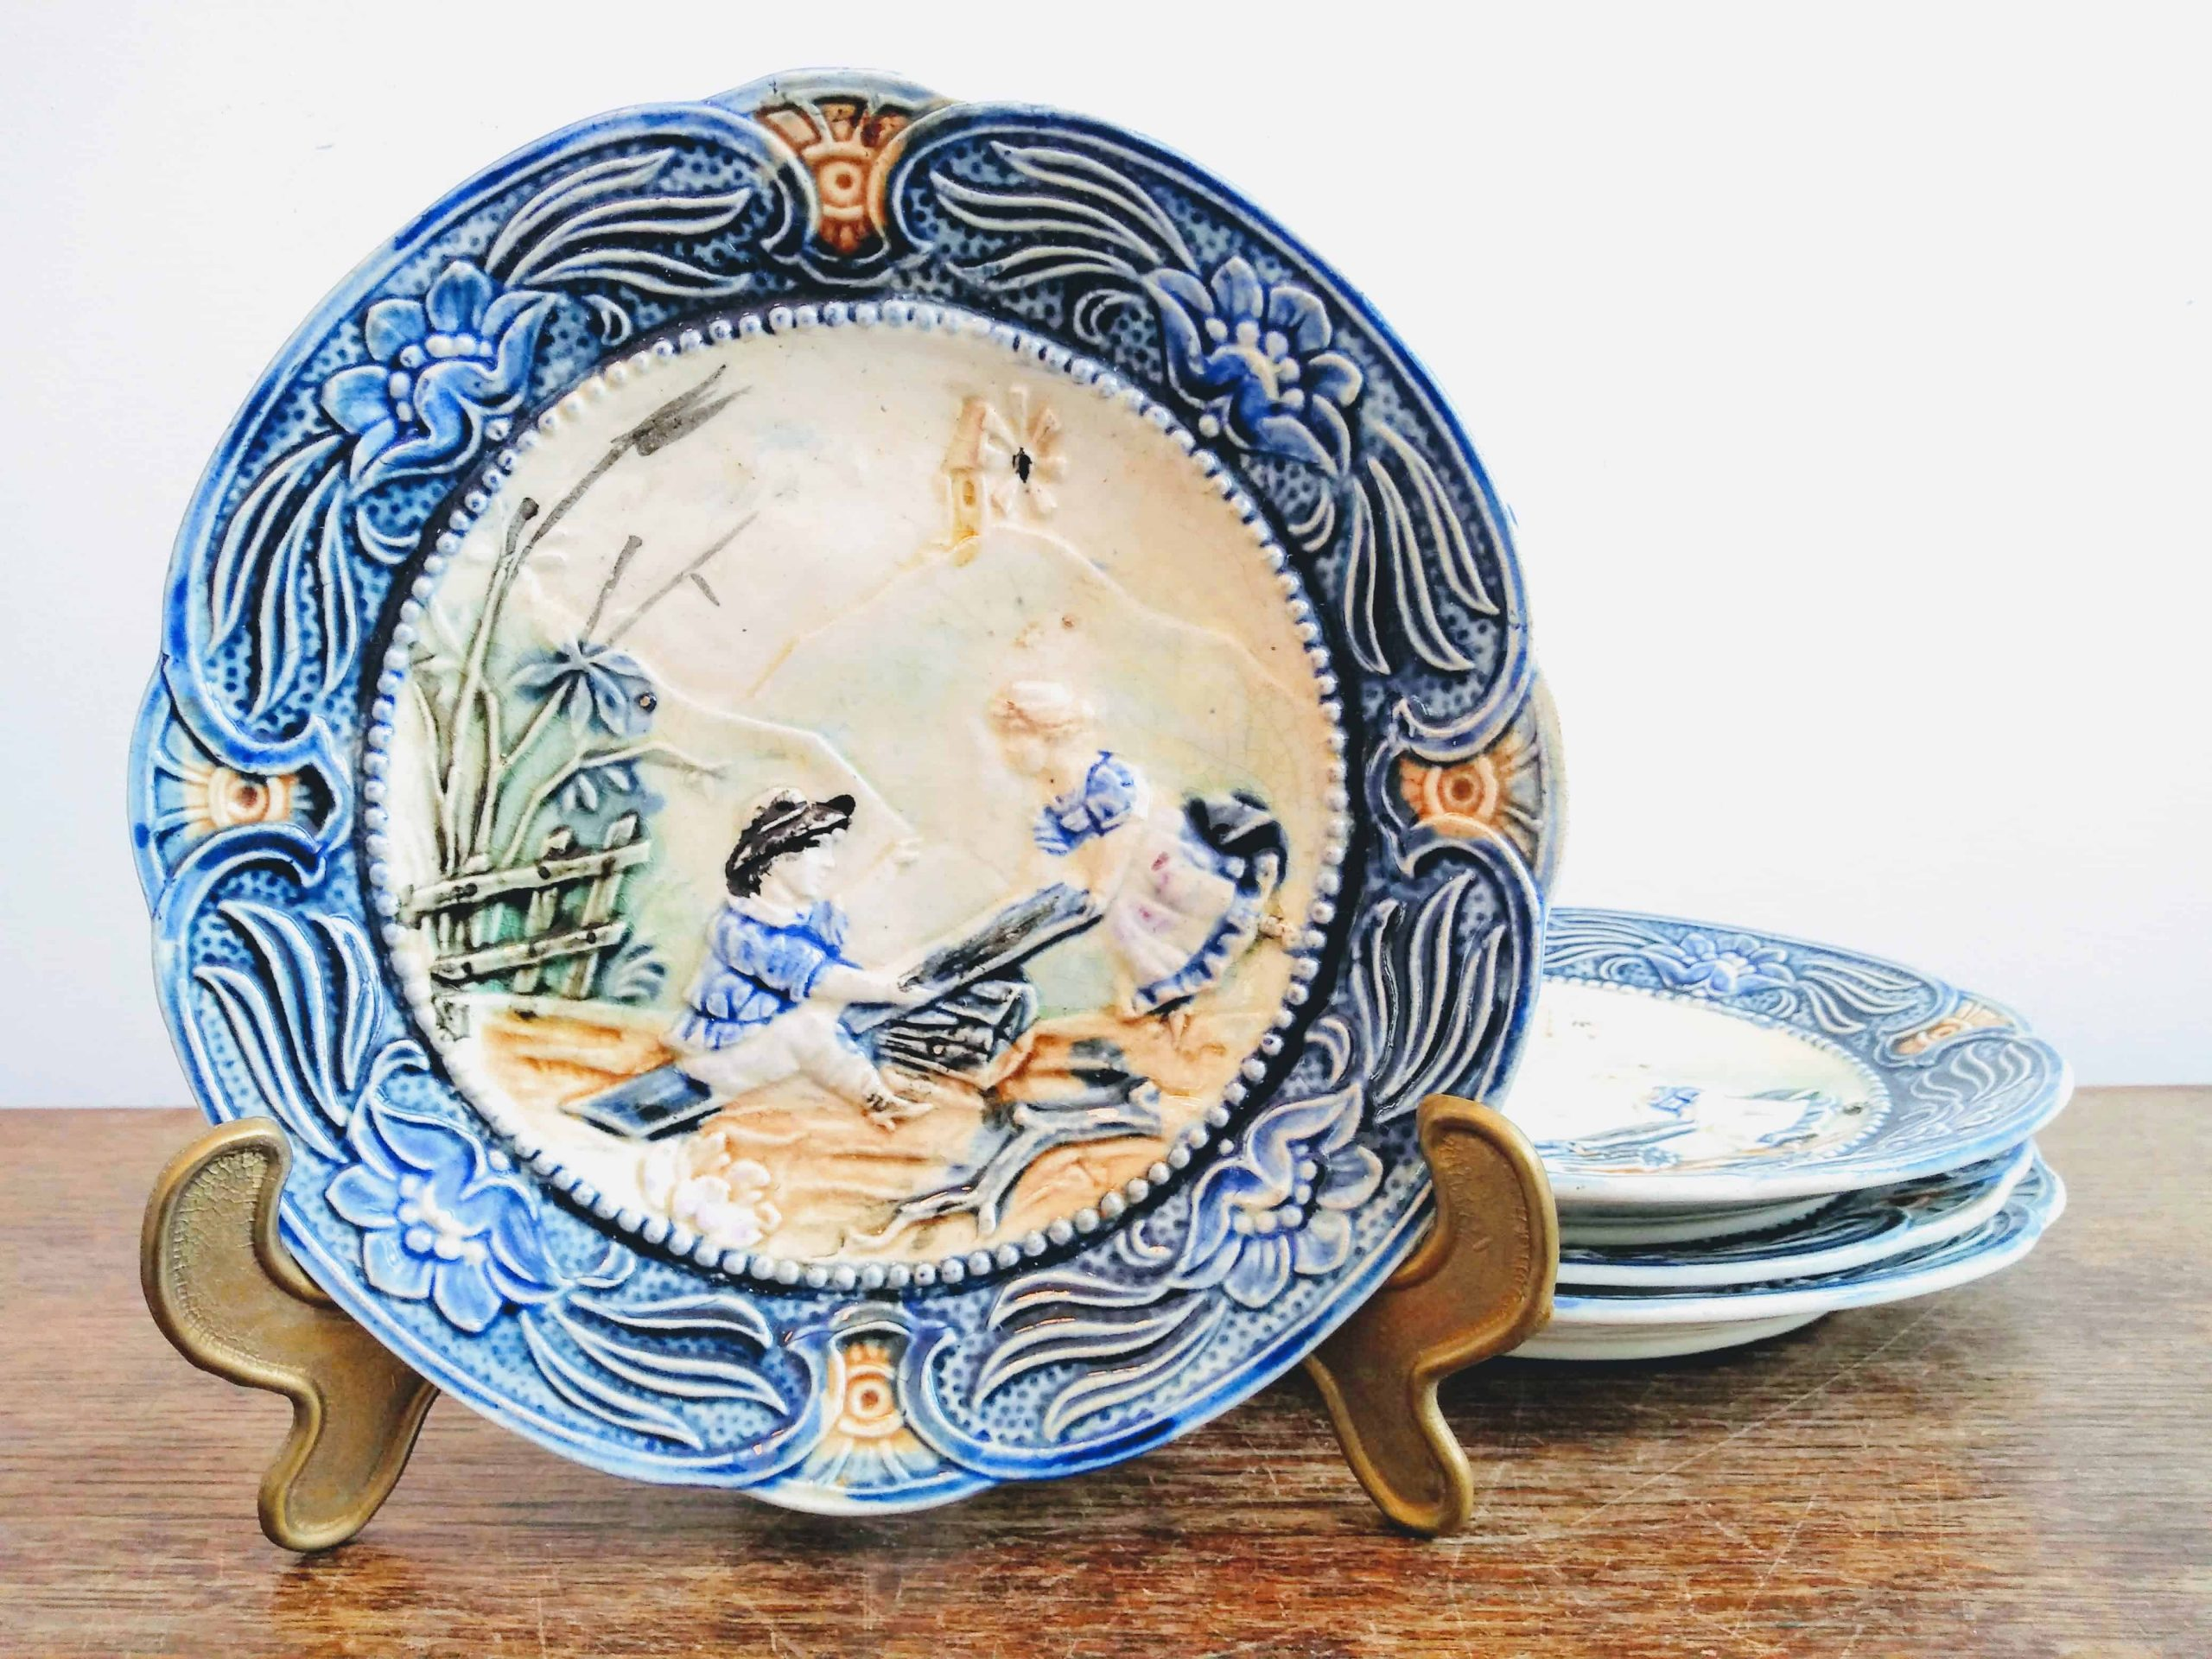 Vintage French Ceramic Lunch Sandwich Plates Featuring A See Saw White Blue Plate Platter Set Of Four Display C1910 20 S European Vintage Emporium